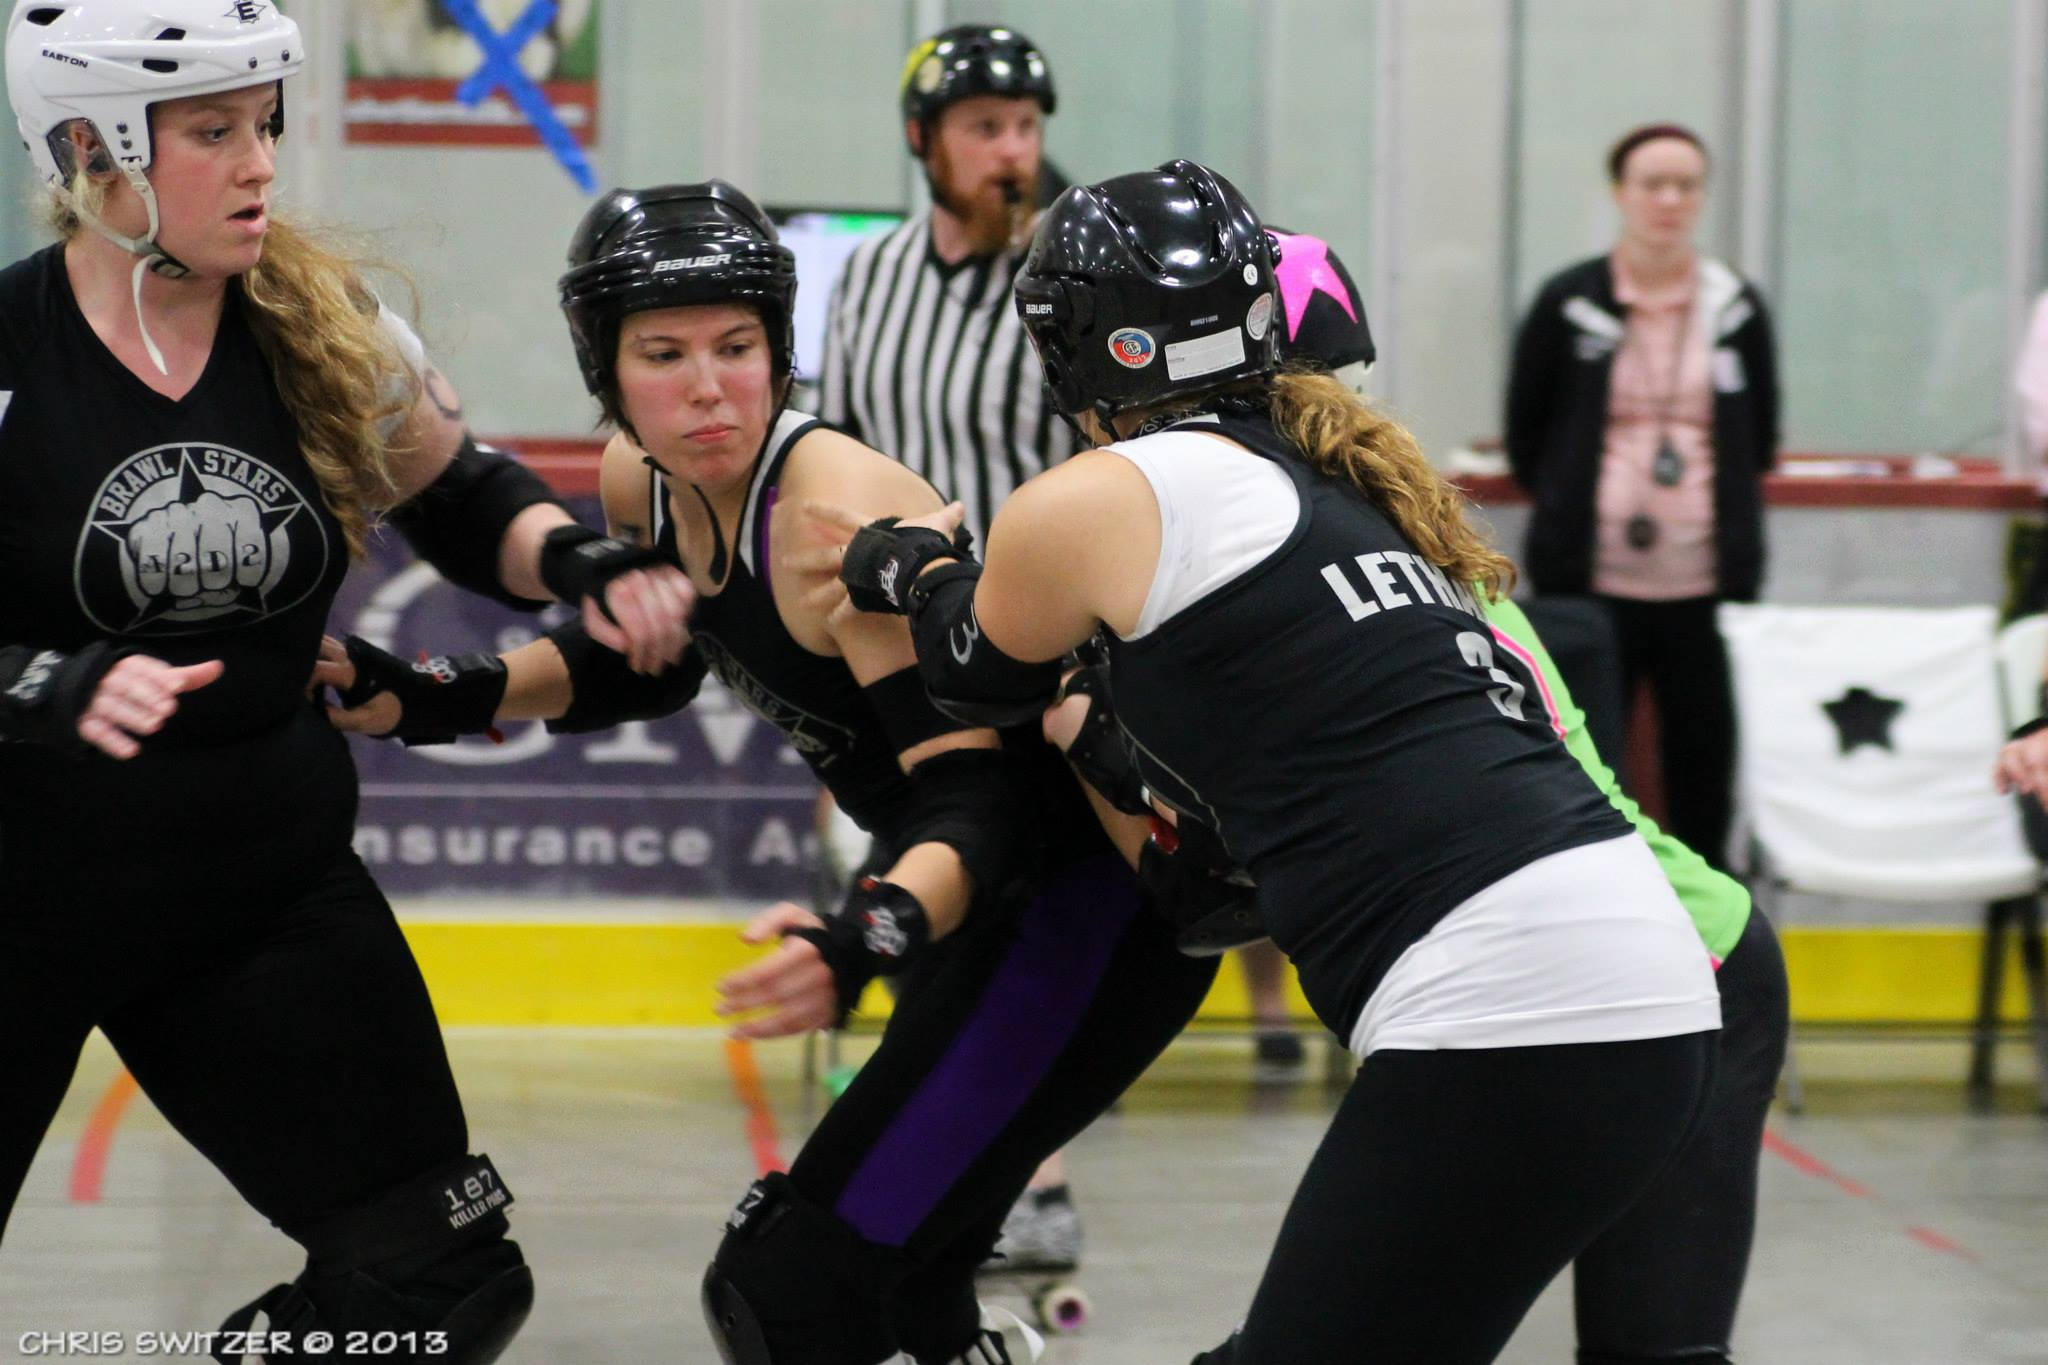 Slamlet is flanked by Brawlstars teammates Courtnasty (left) and Lethal Bo Peep (right) as they block Lansing's jammer during the championship game of the Mitten Kitten Mash-Up North tournament in Kalkaska October 13, 2013. Ultimately, the Brawlstars reigned victorious 256-151. Photo by Chris Switzer.